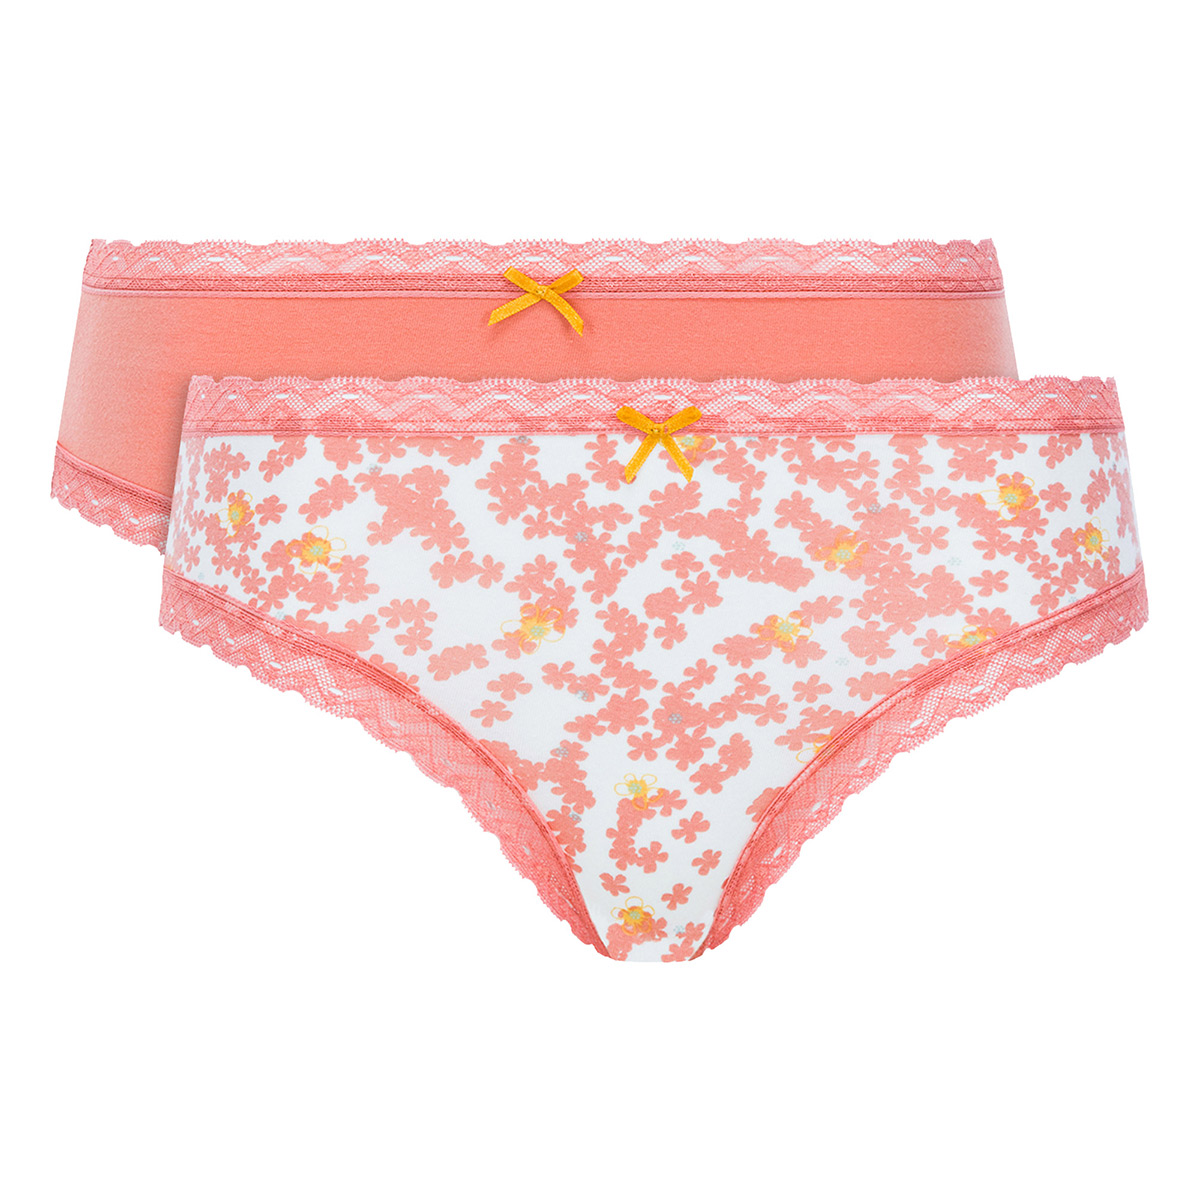 Pacco da 2 mutande in cotone arancione uniforme e stampato - Cotton Fancy - PLAYTEX